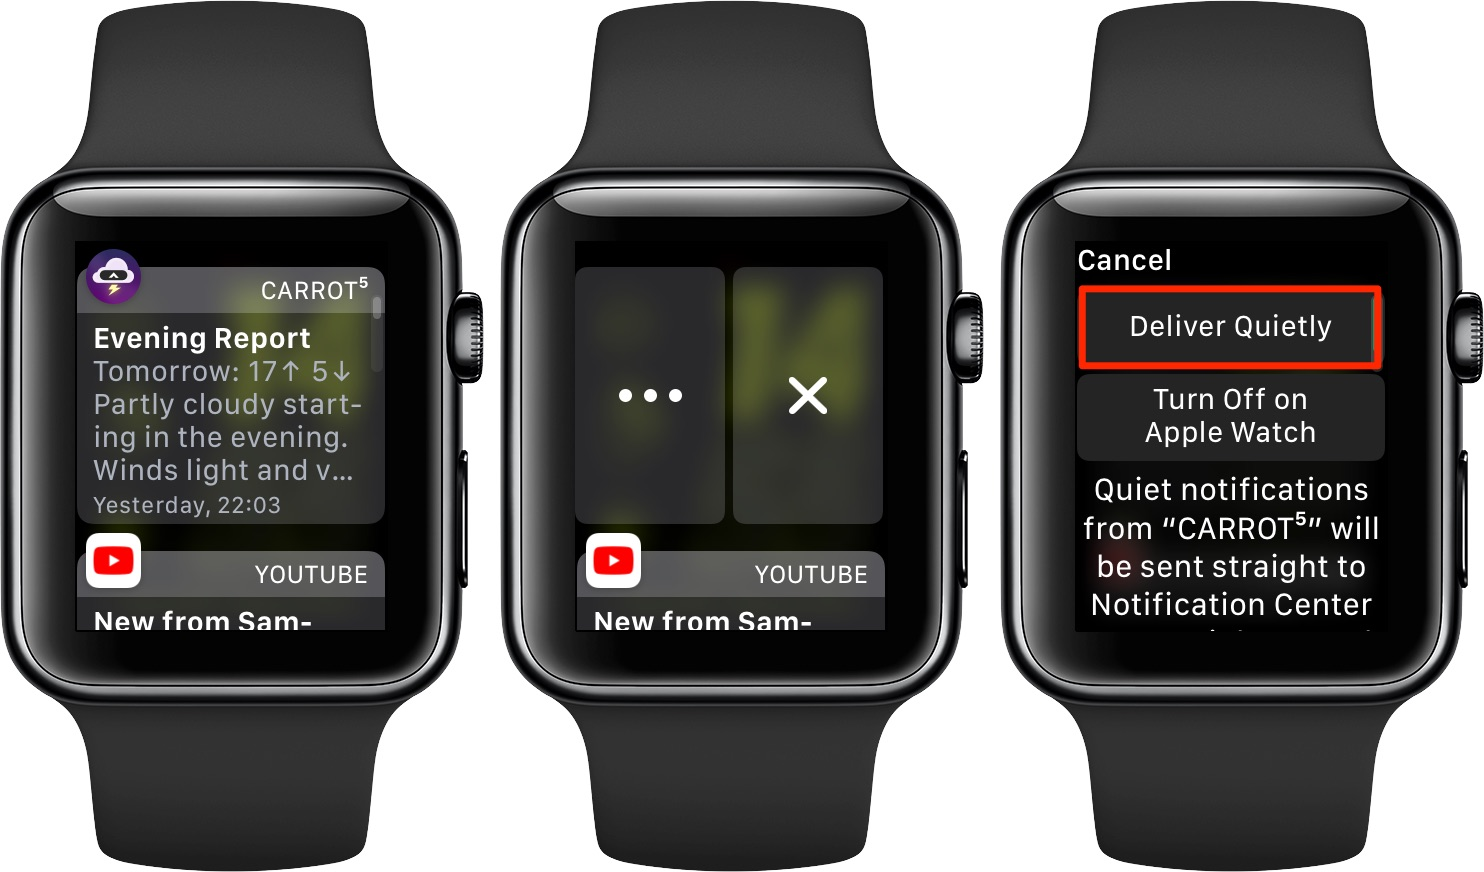 Apple Watch notifications - Deliver Quietly can also be accessed with Force Touch